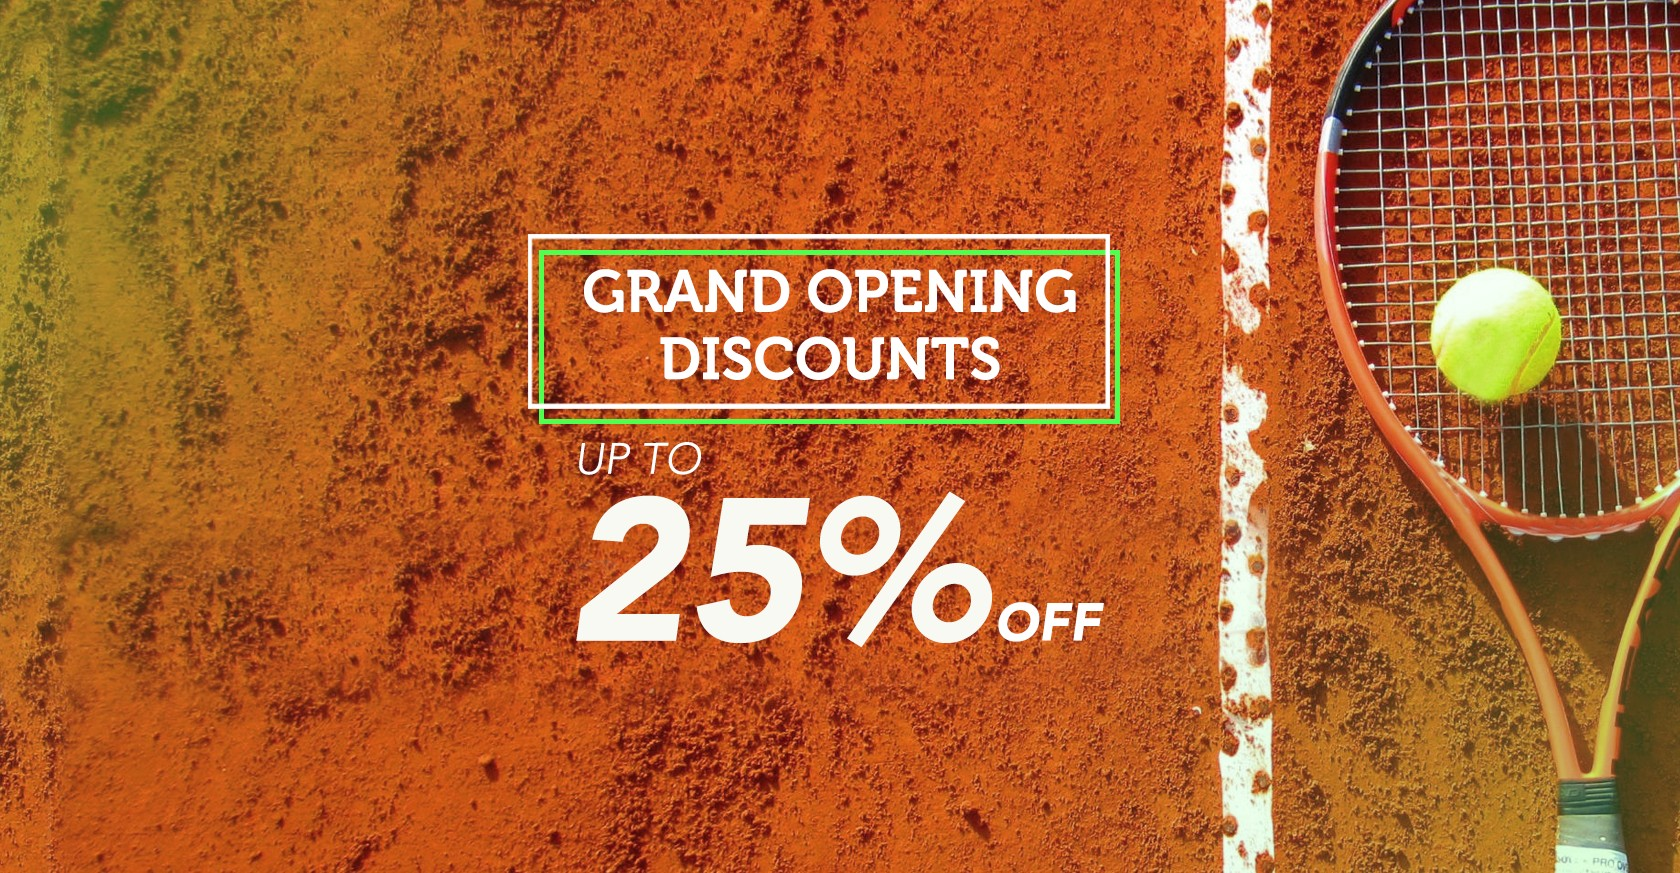 Grand opening discount